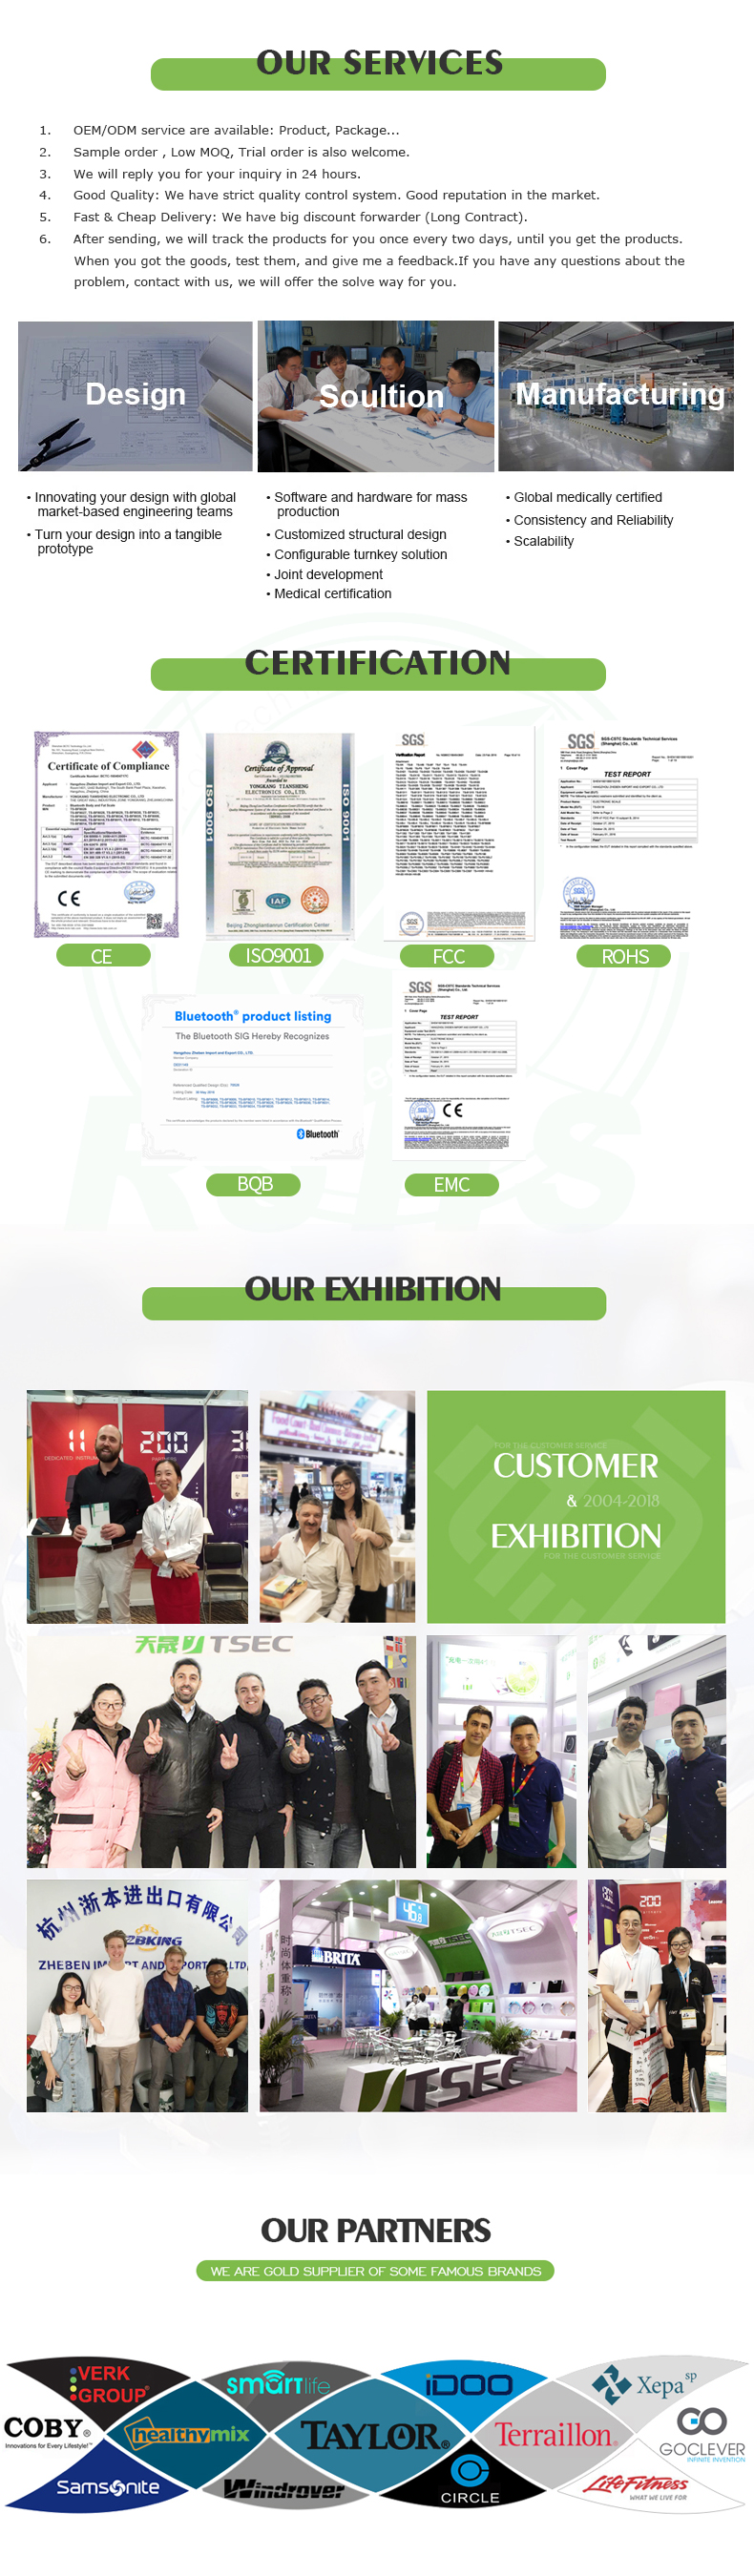 Exhibition & Partner